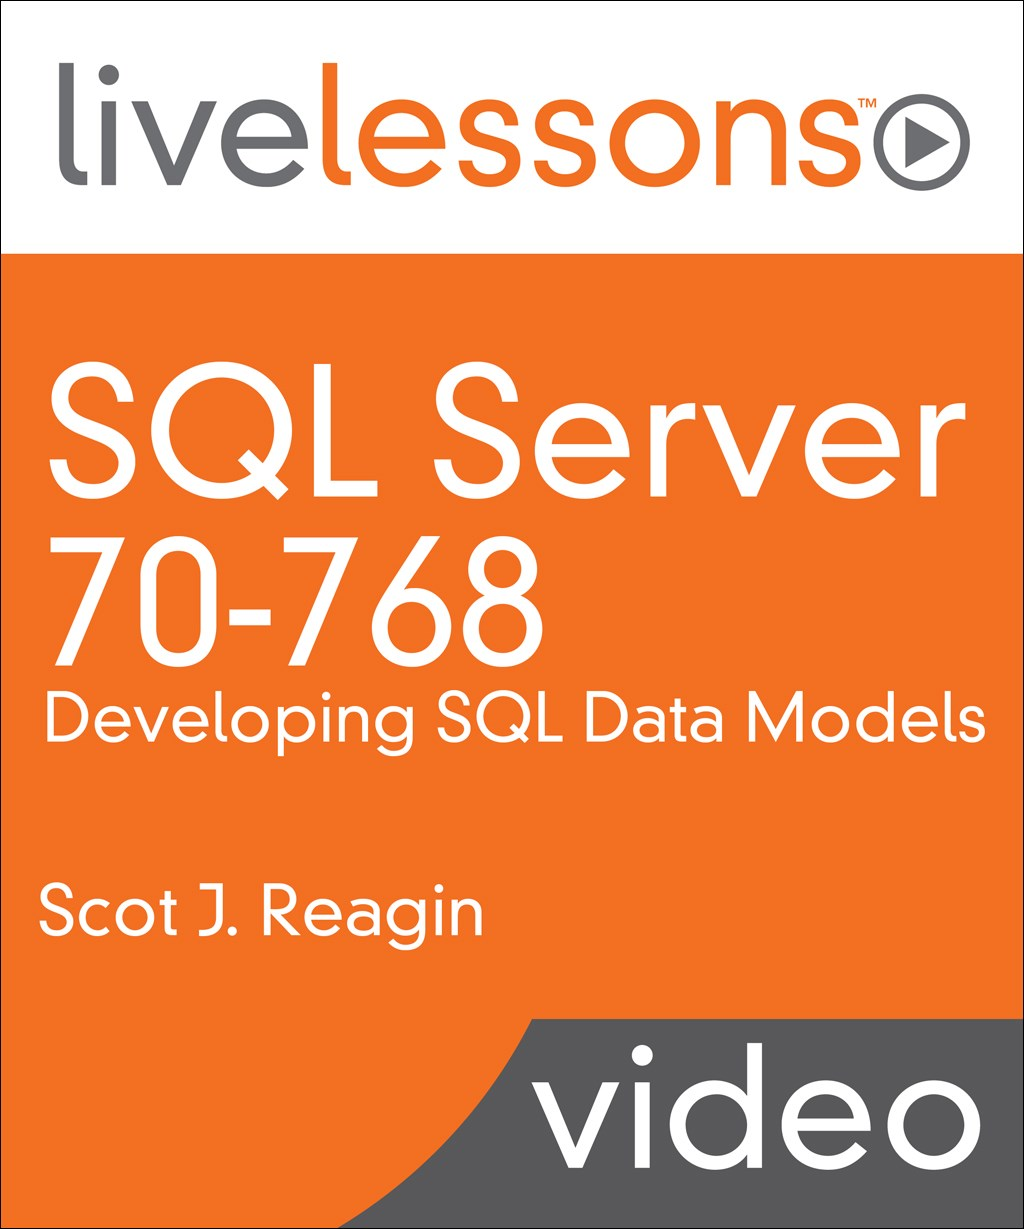 SQL Server 70-768: Developing SQL Data Models LiveLessons